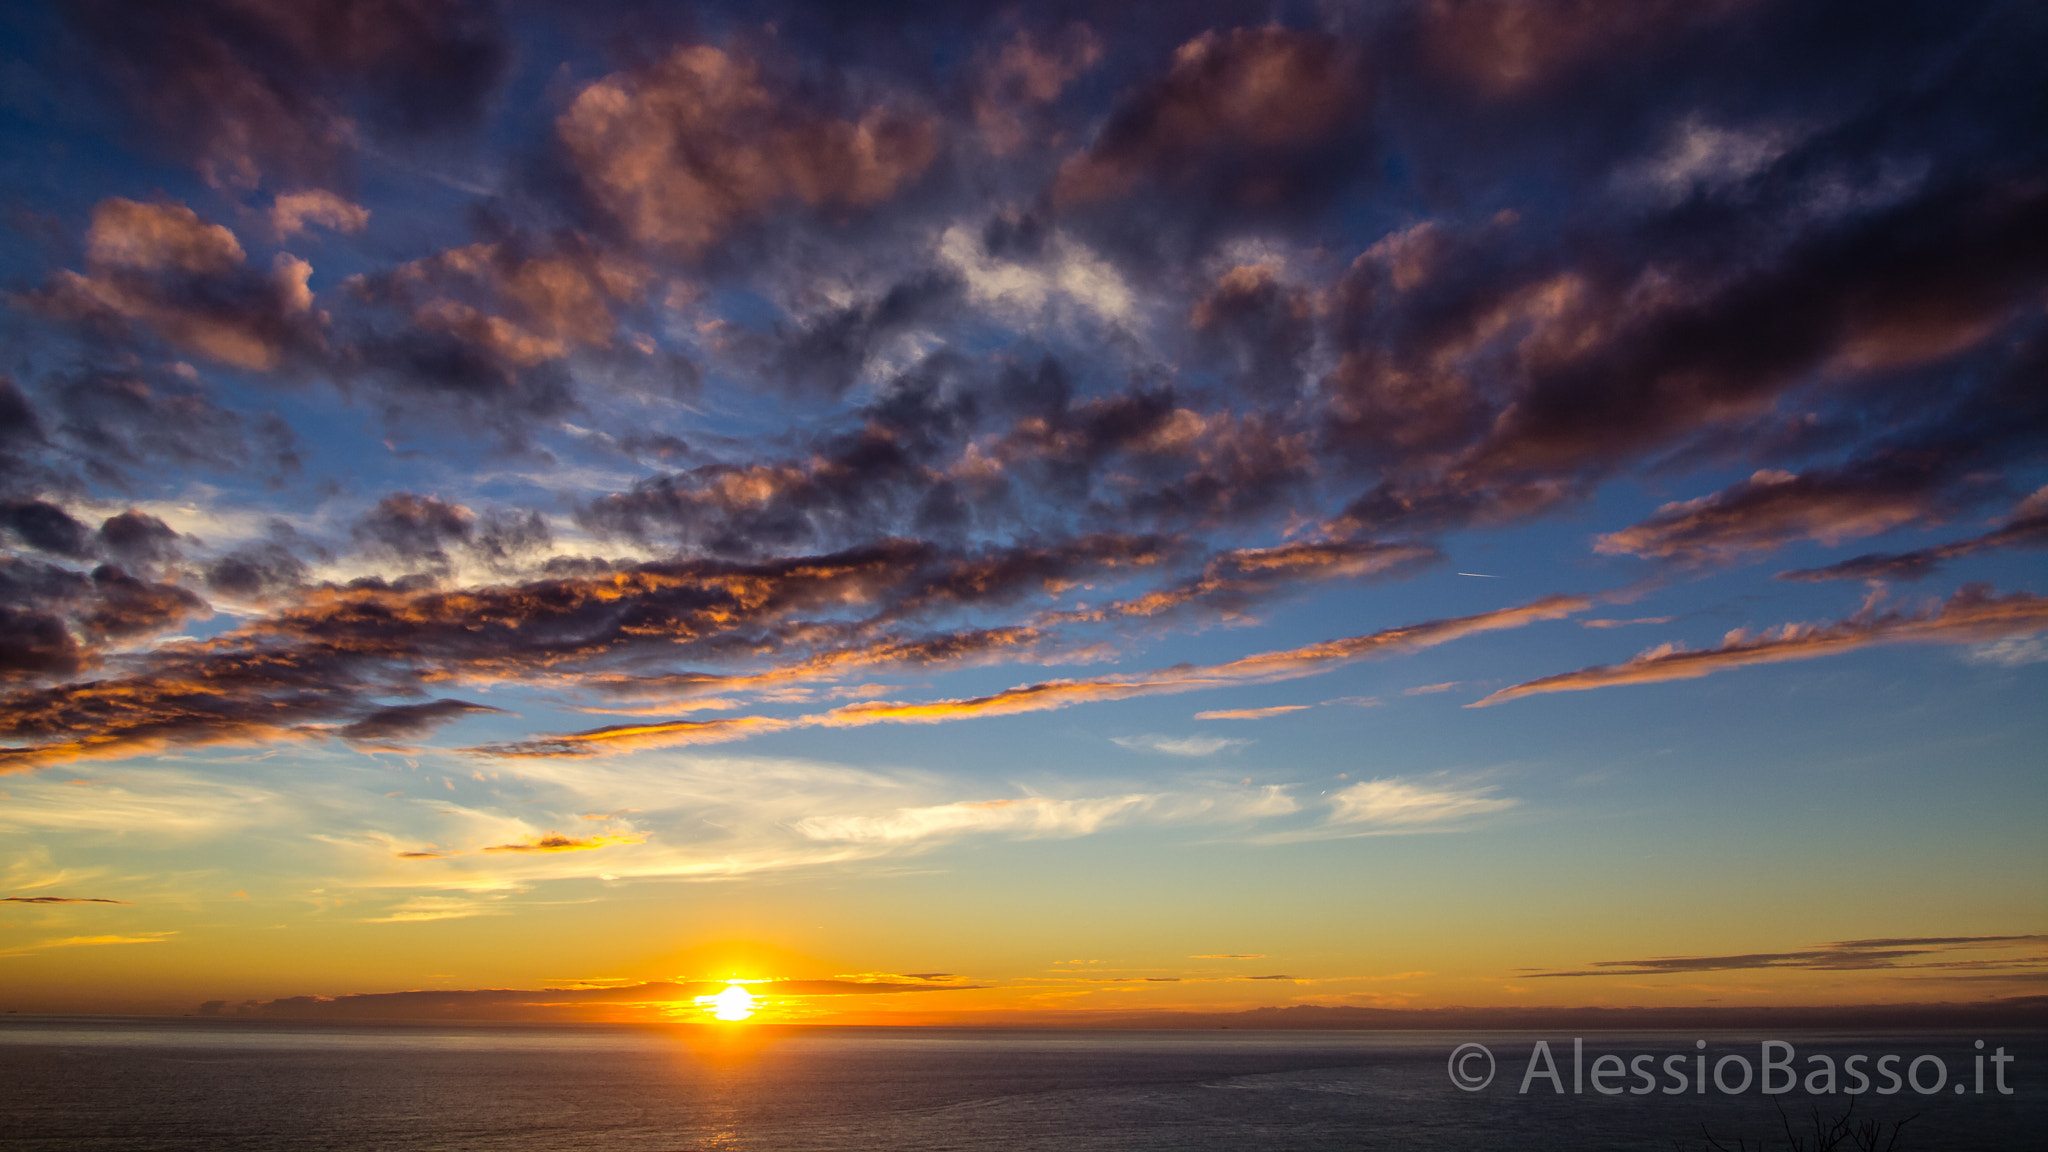 Photograph Five Lands Sunset by Alessio Basso on 500px